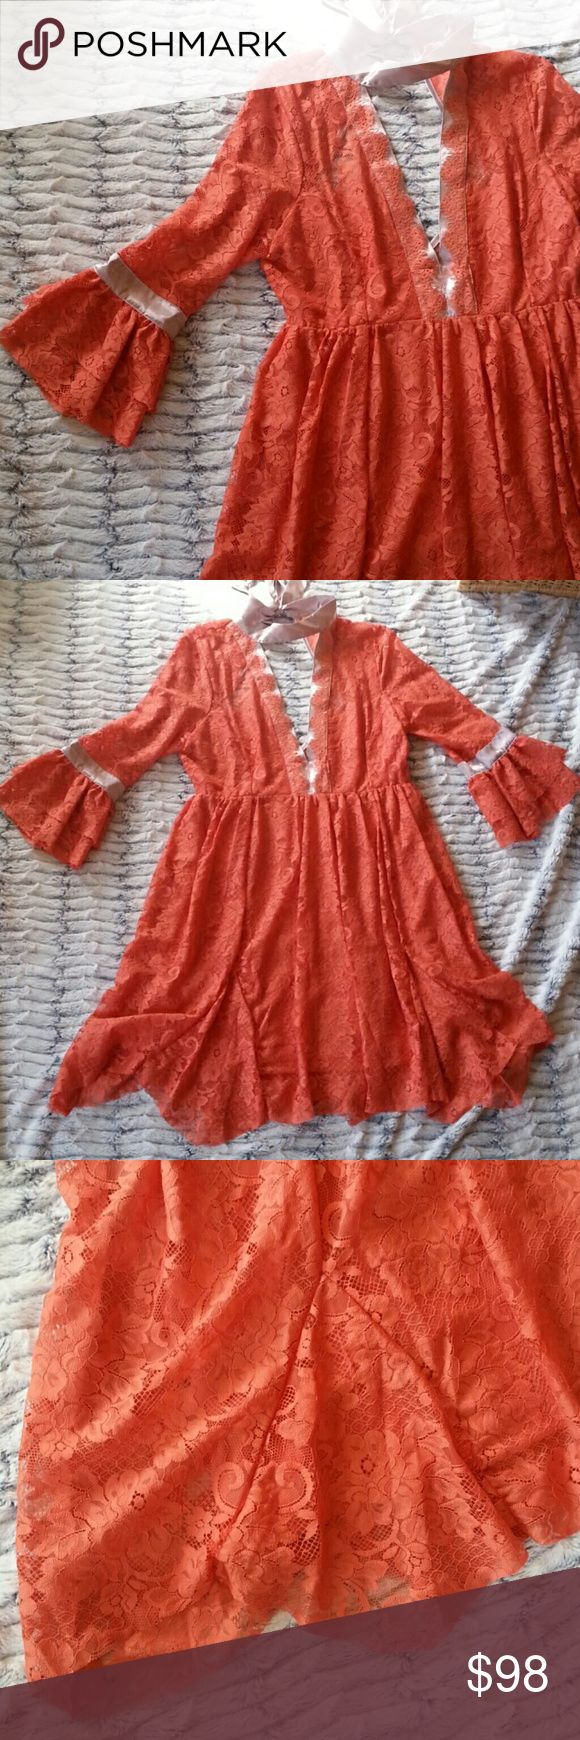 Free People Peach Lace Dress Never worn. Brand new condition. So elegant and lovely. Wide mouthed sleeves. Tie at back of choker neck. Open back. Free People Dresses Long Sleeve